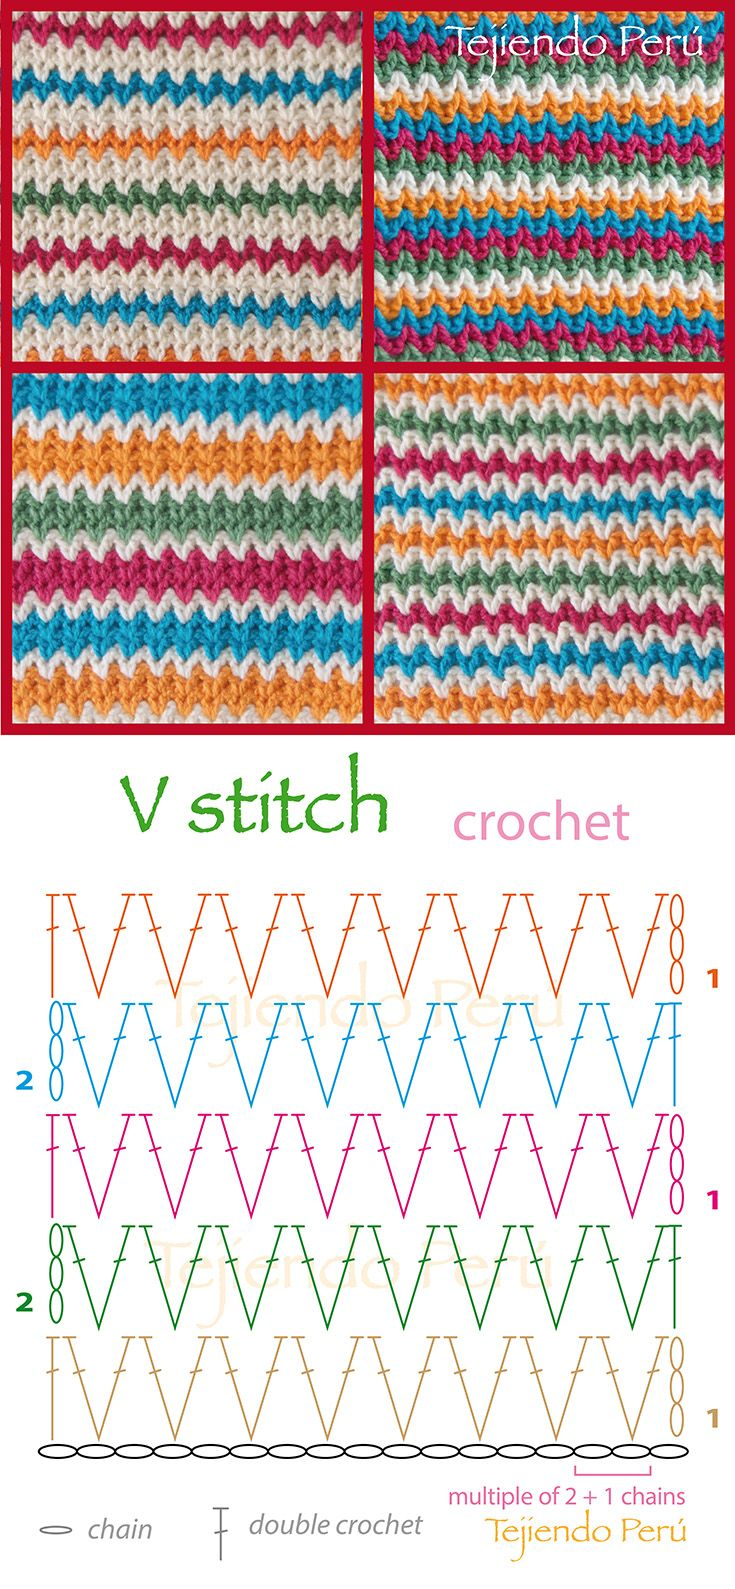 crochet v stitch pattern diagram or chart puntos fantas a en rh pinterest com crochet stitches diagrams crochet stitch diagrams pdf